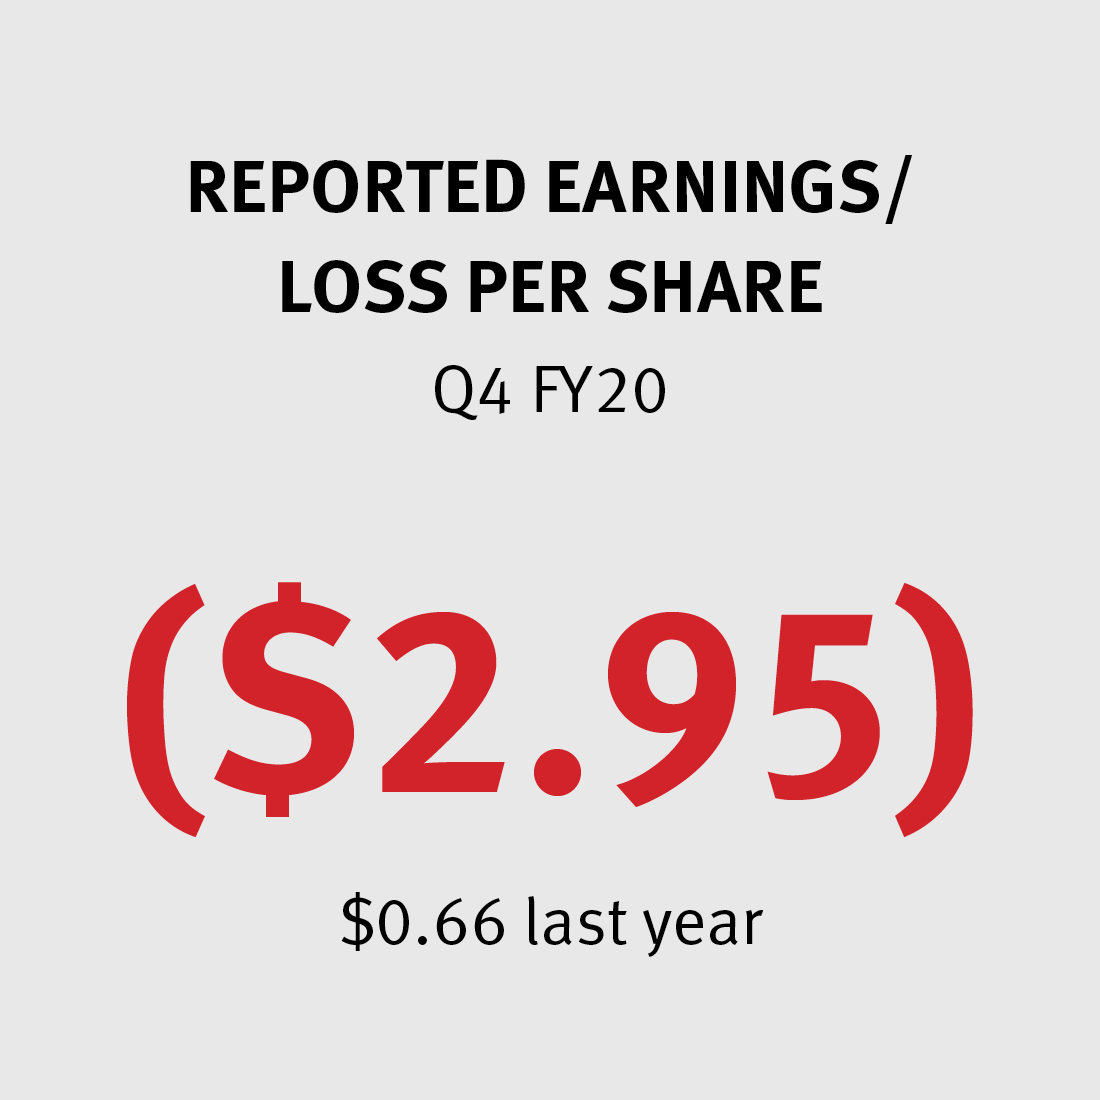 Reported Earnings per Share -$2.95 ($0.66 last year)